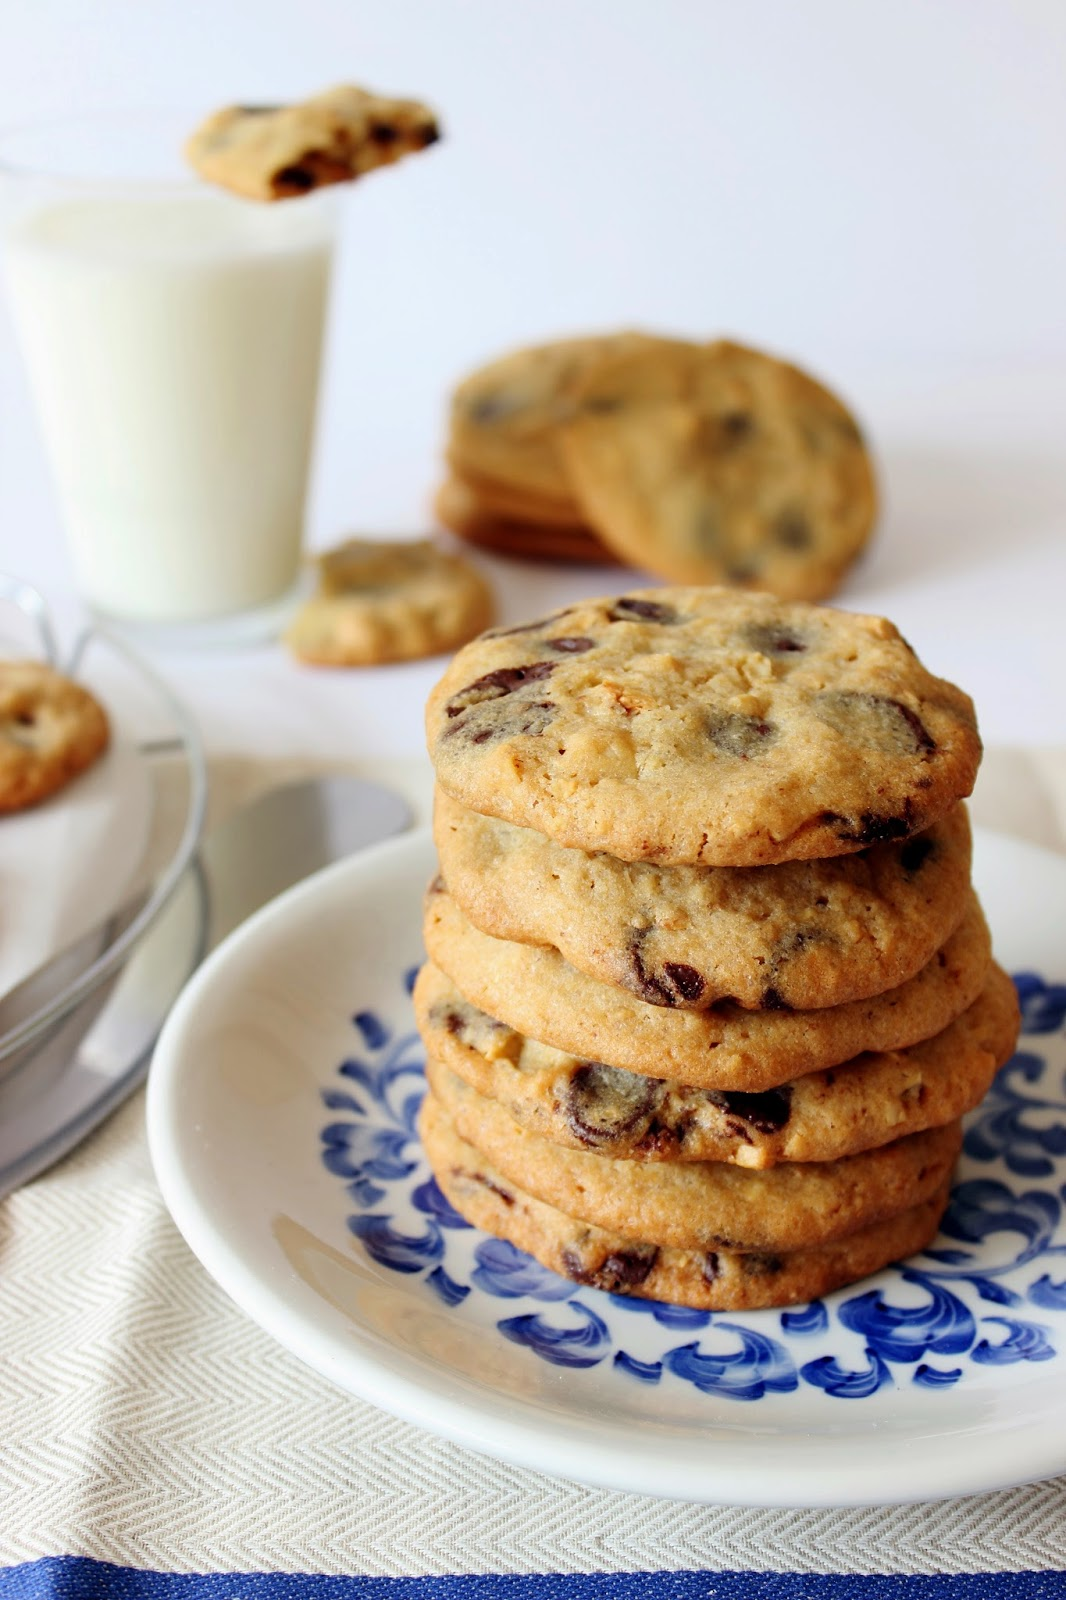 Chocolate chip cookies met hazelnoten